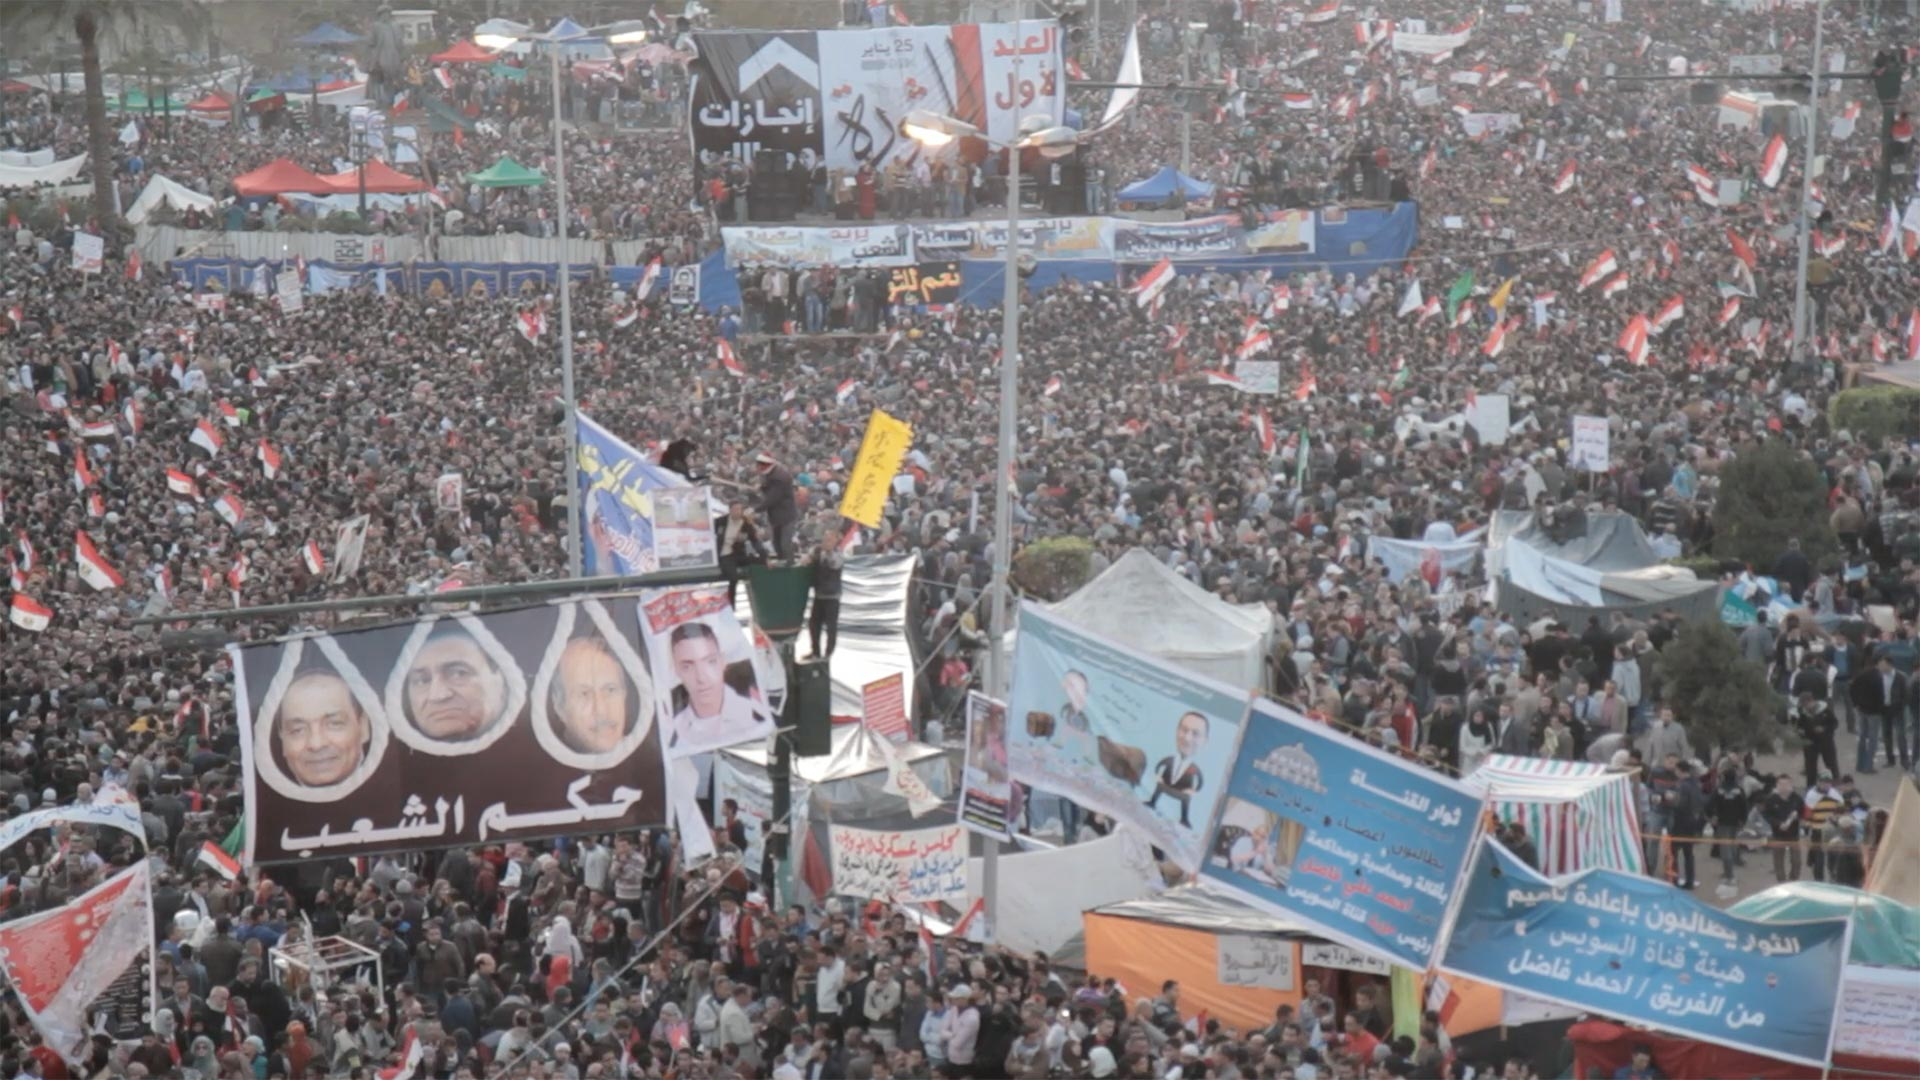 CAIRO'S BIG MARCH ON TAHRIR, PART 2